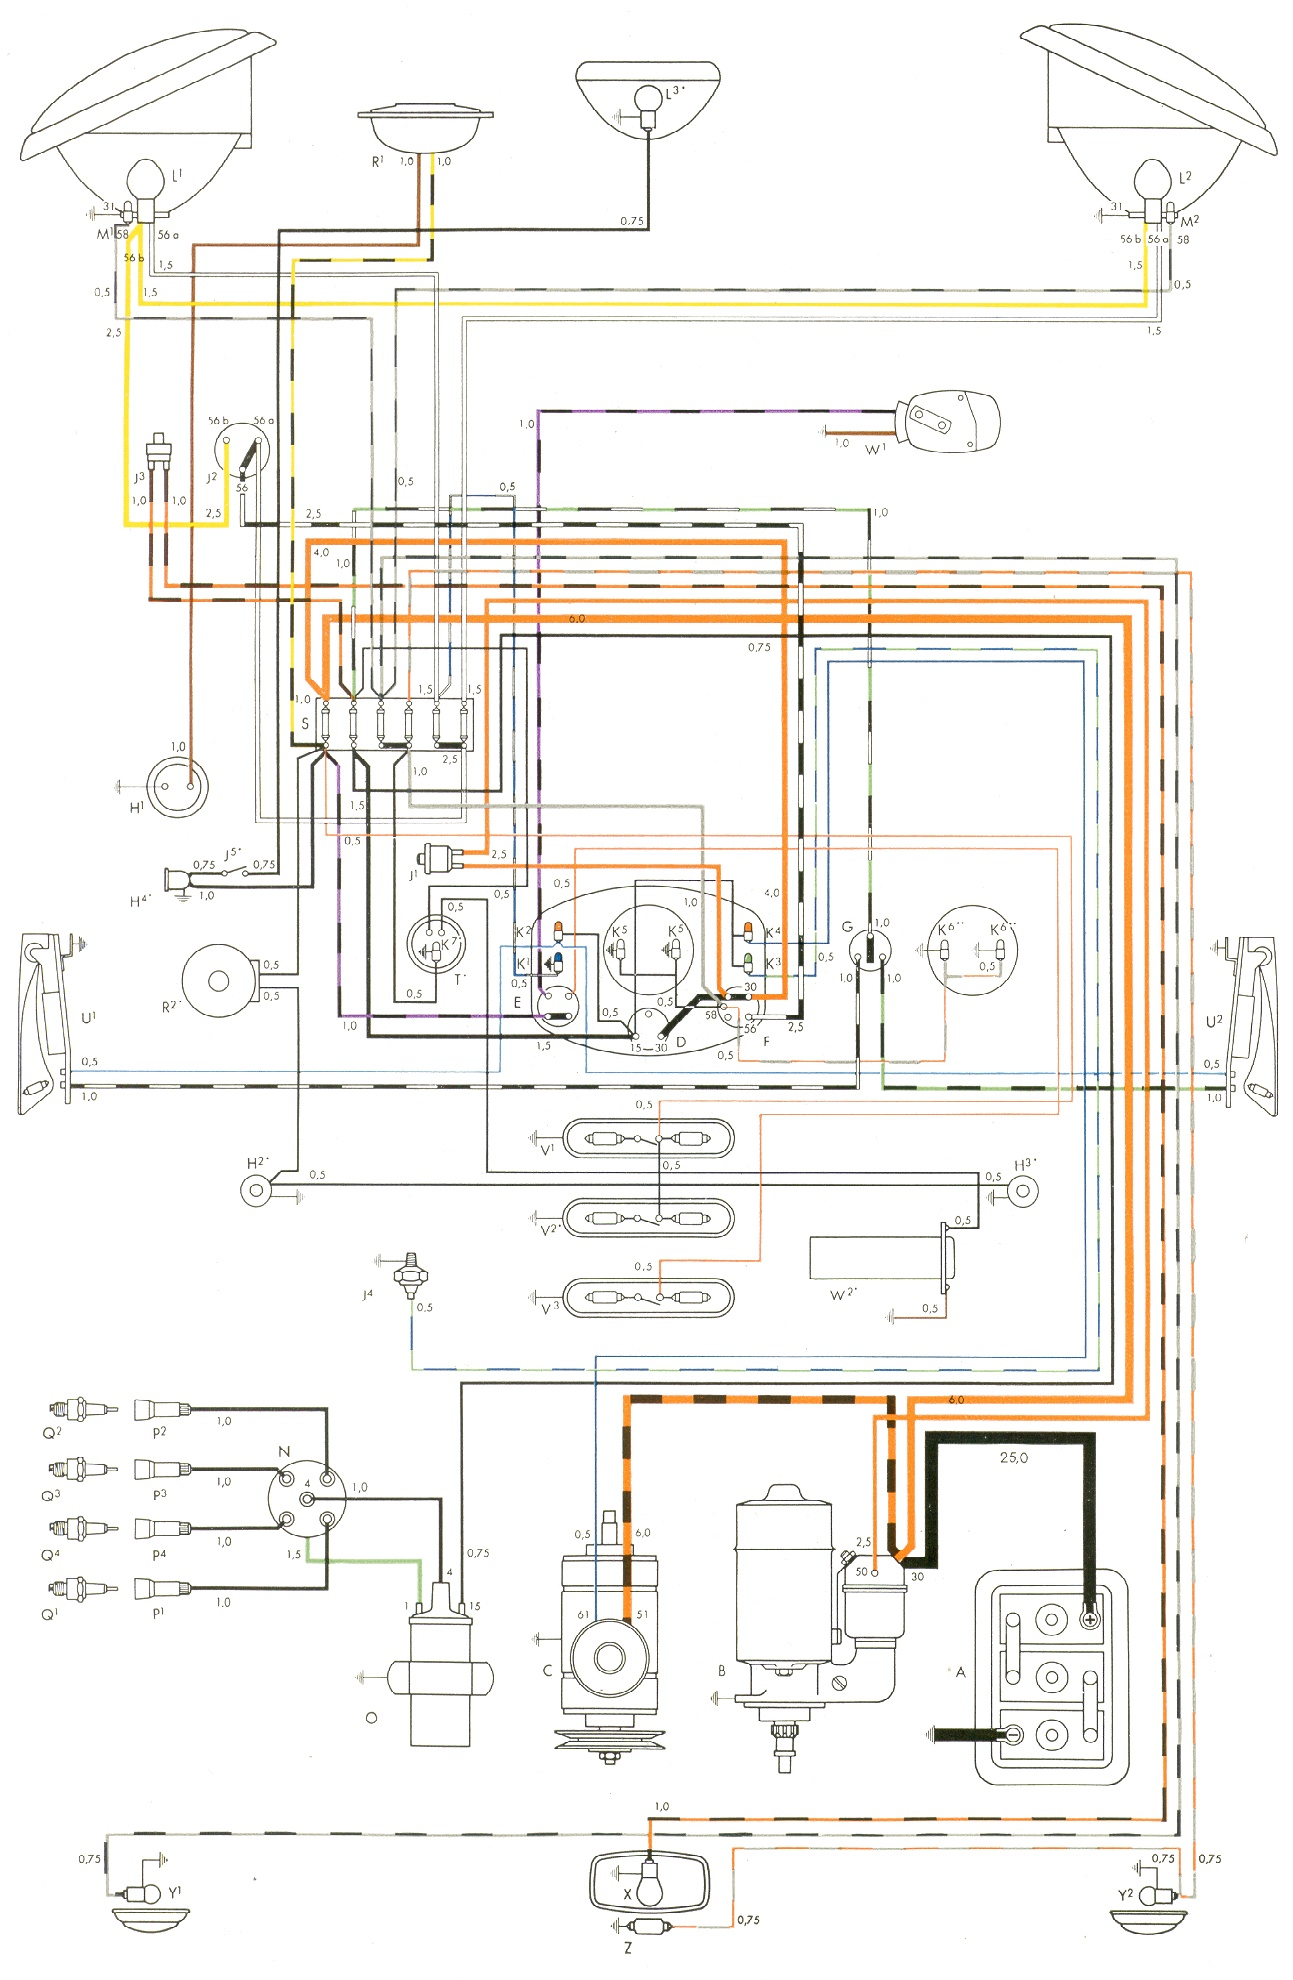 2000 Vw Wiring Diagram Computer Great Installation Of Beetle Engine The 2005 Volkswagen Vintagebus Com Bus And Other Diagrams Rh 70 1973